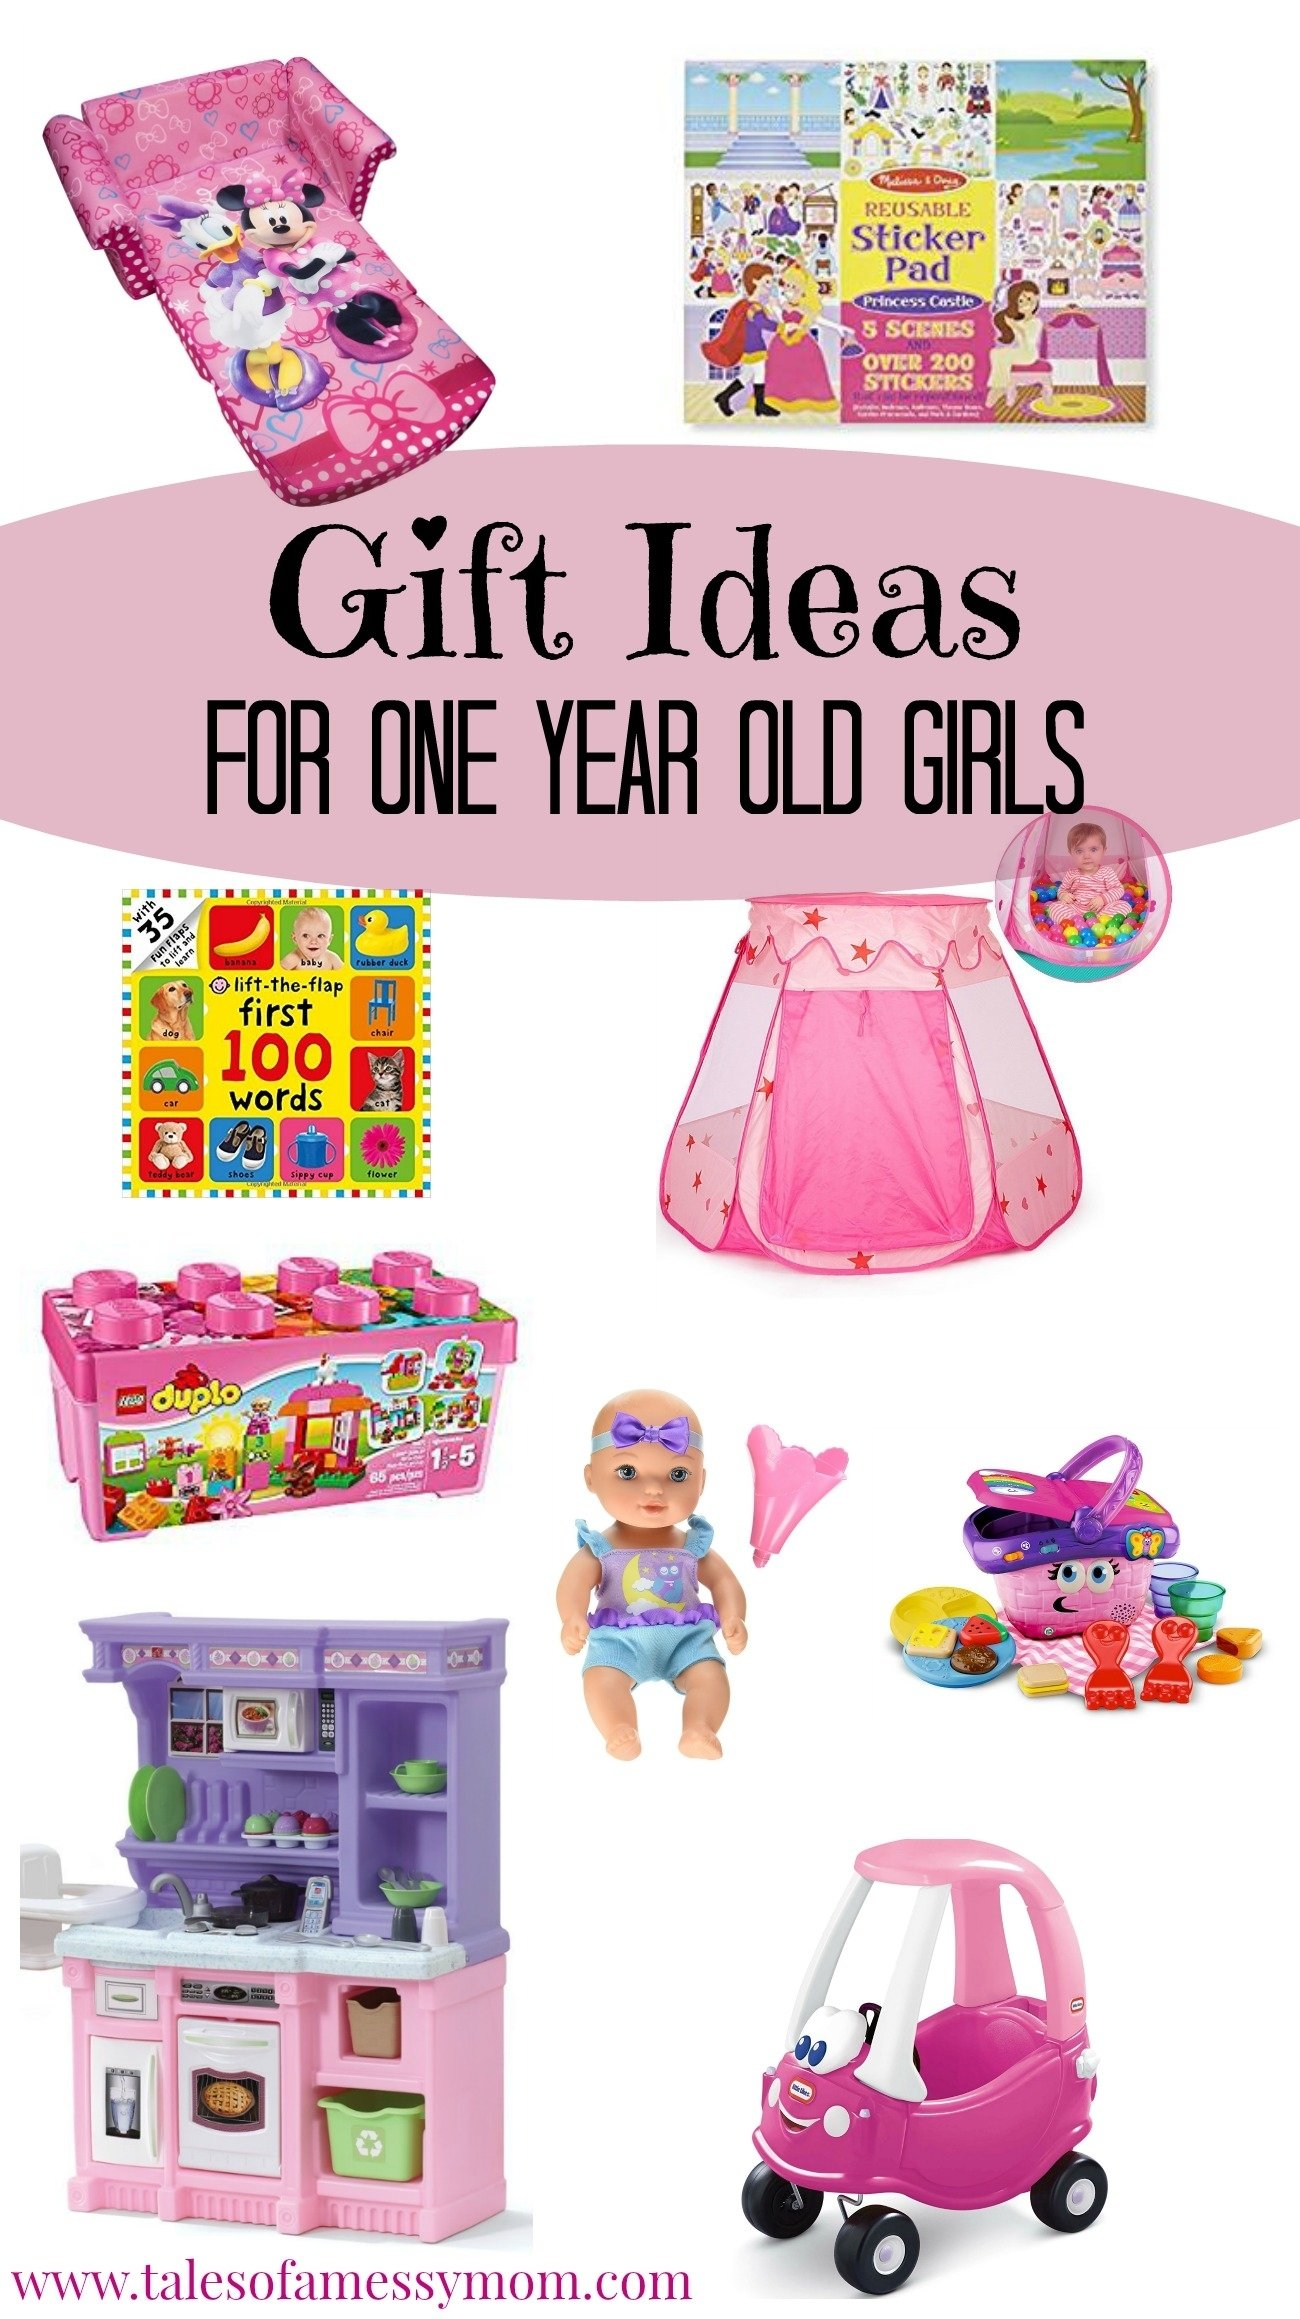 10 Cute Gift Ideas 11 Year Old Girl gift ideas for one year old girls tales of a messy mom 1 2021